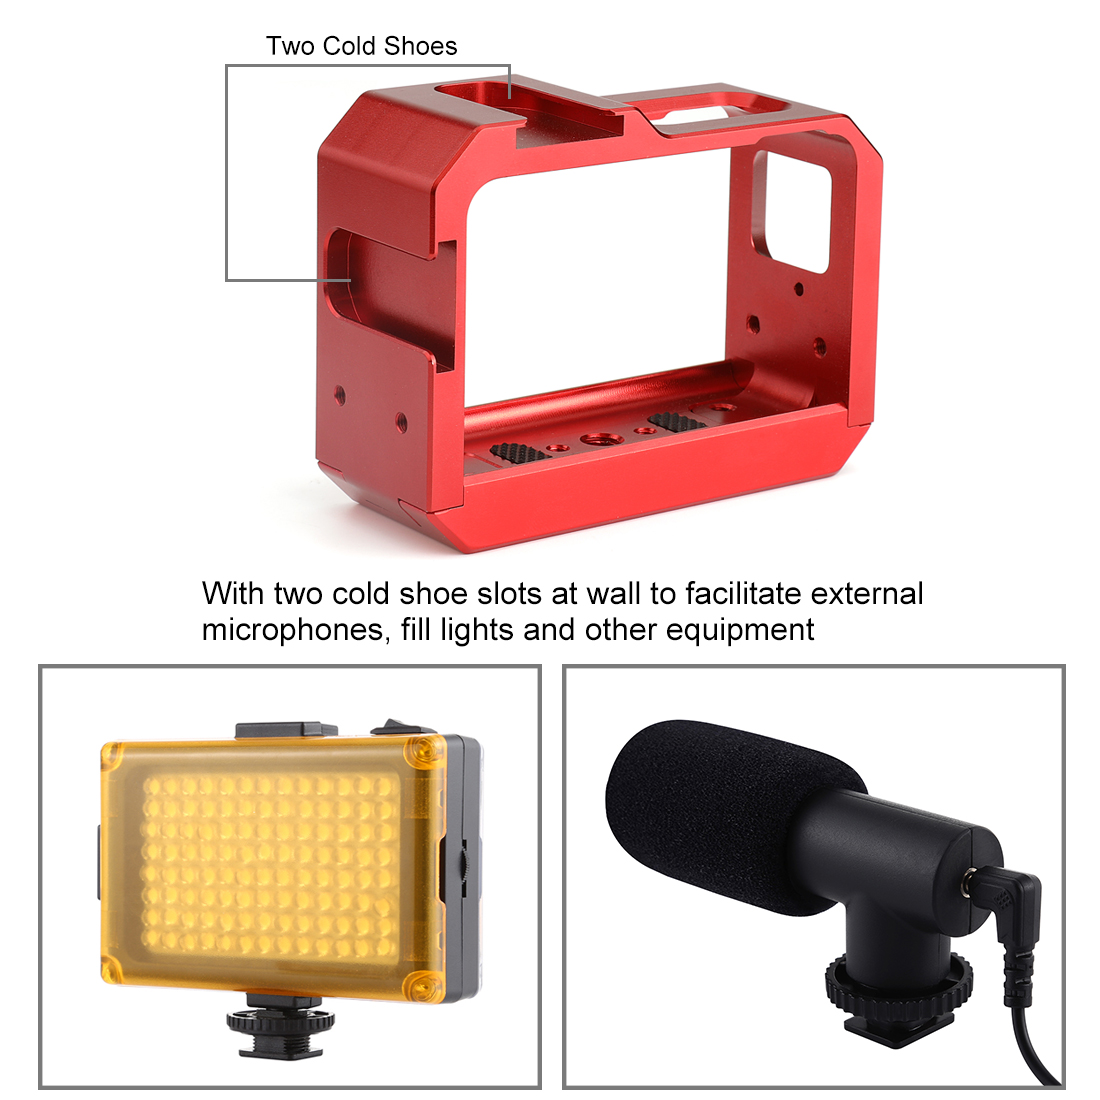 PULUZ Aluminum Alloy Adapter Protective Shell Frame Cage with Cold Shoe Mouth for Insta 360 One R Camera